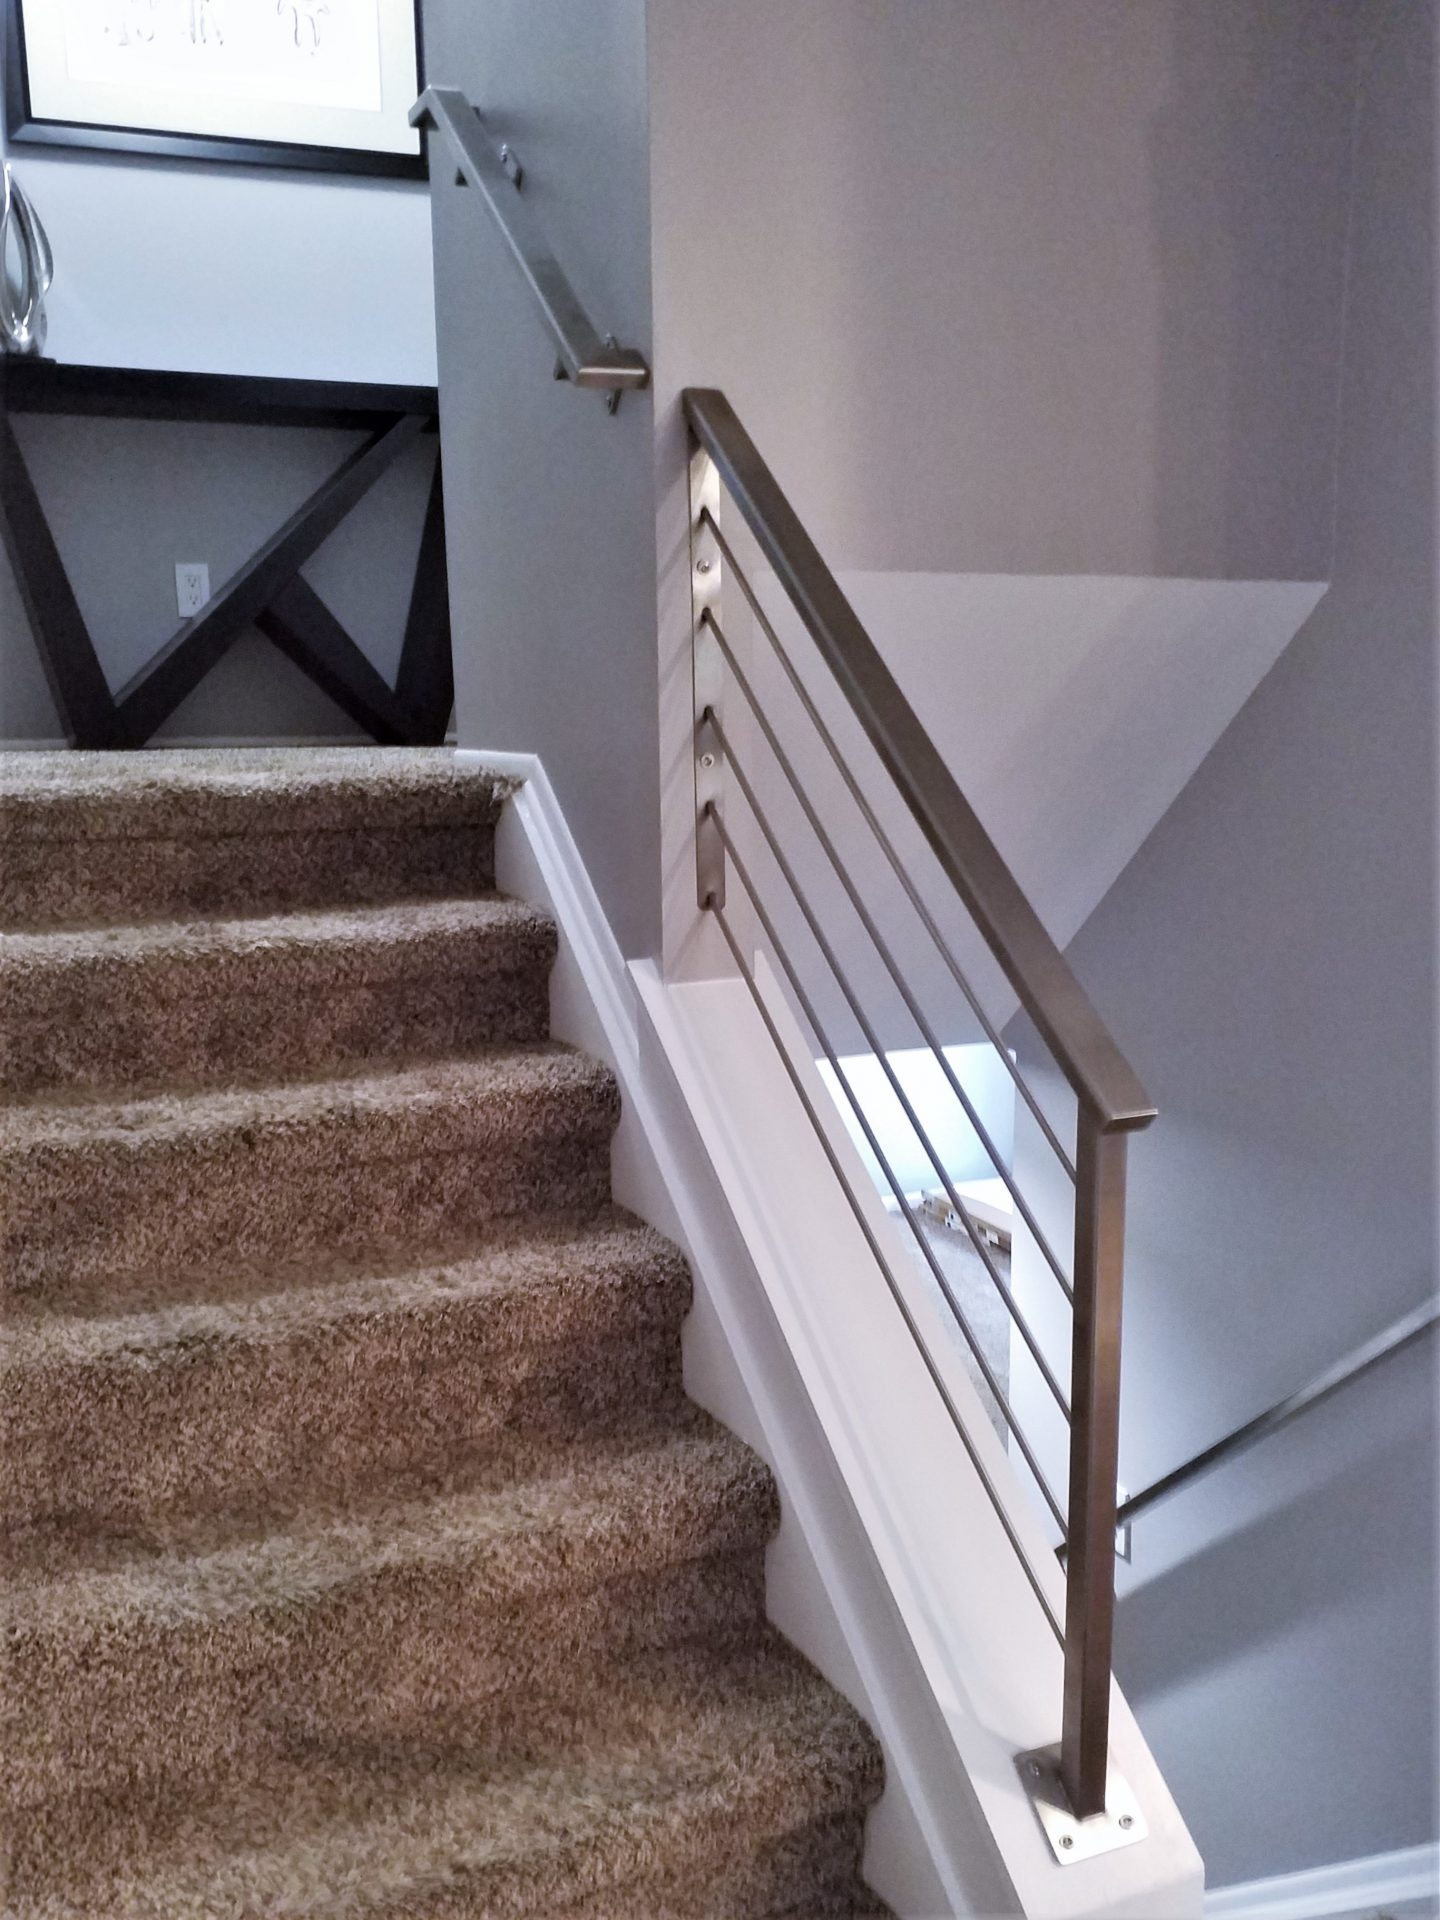 Stainless Steel Handrail Stair Railing Great Lakes Metal Fabrication   Steel Hand Railing For Stairs   Rustic   Exterior   Backyard   Low Cost   Decorative